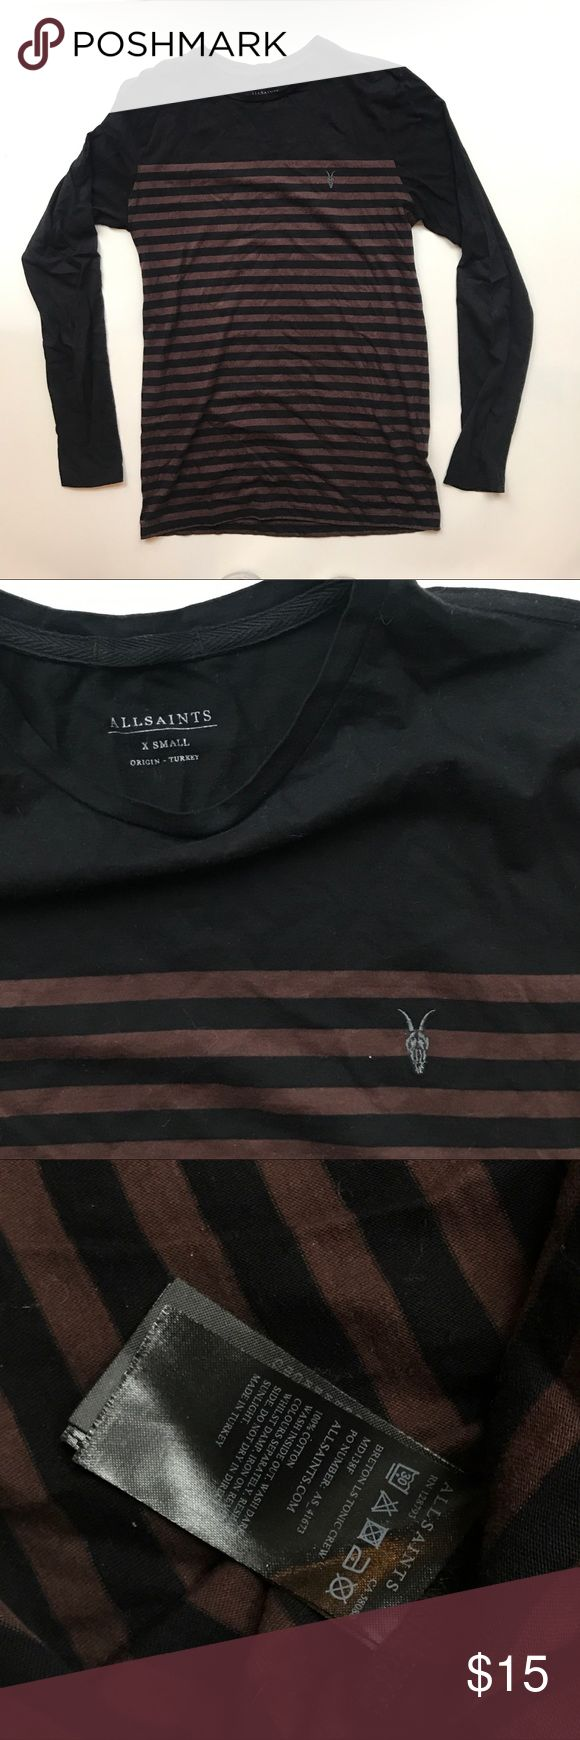 "AllSaints Breton LS Crew Black and oxblood stripe long sleeve shirt, size XS. No imperfections~ 16.5"" W 26"" L 25"" sleeve All Saints Shirts Tees - Long Sleeve"